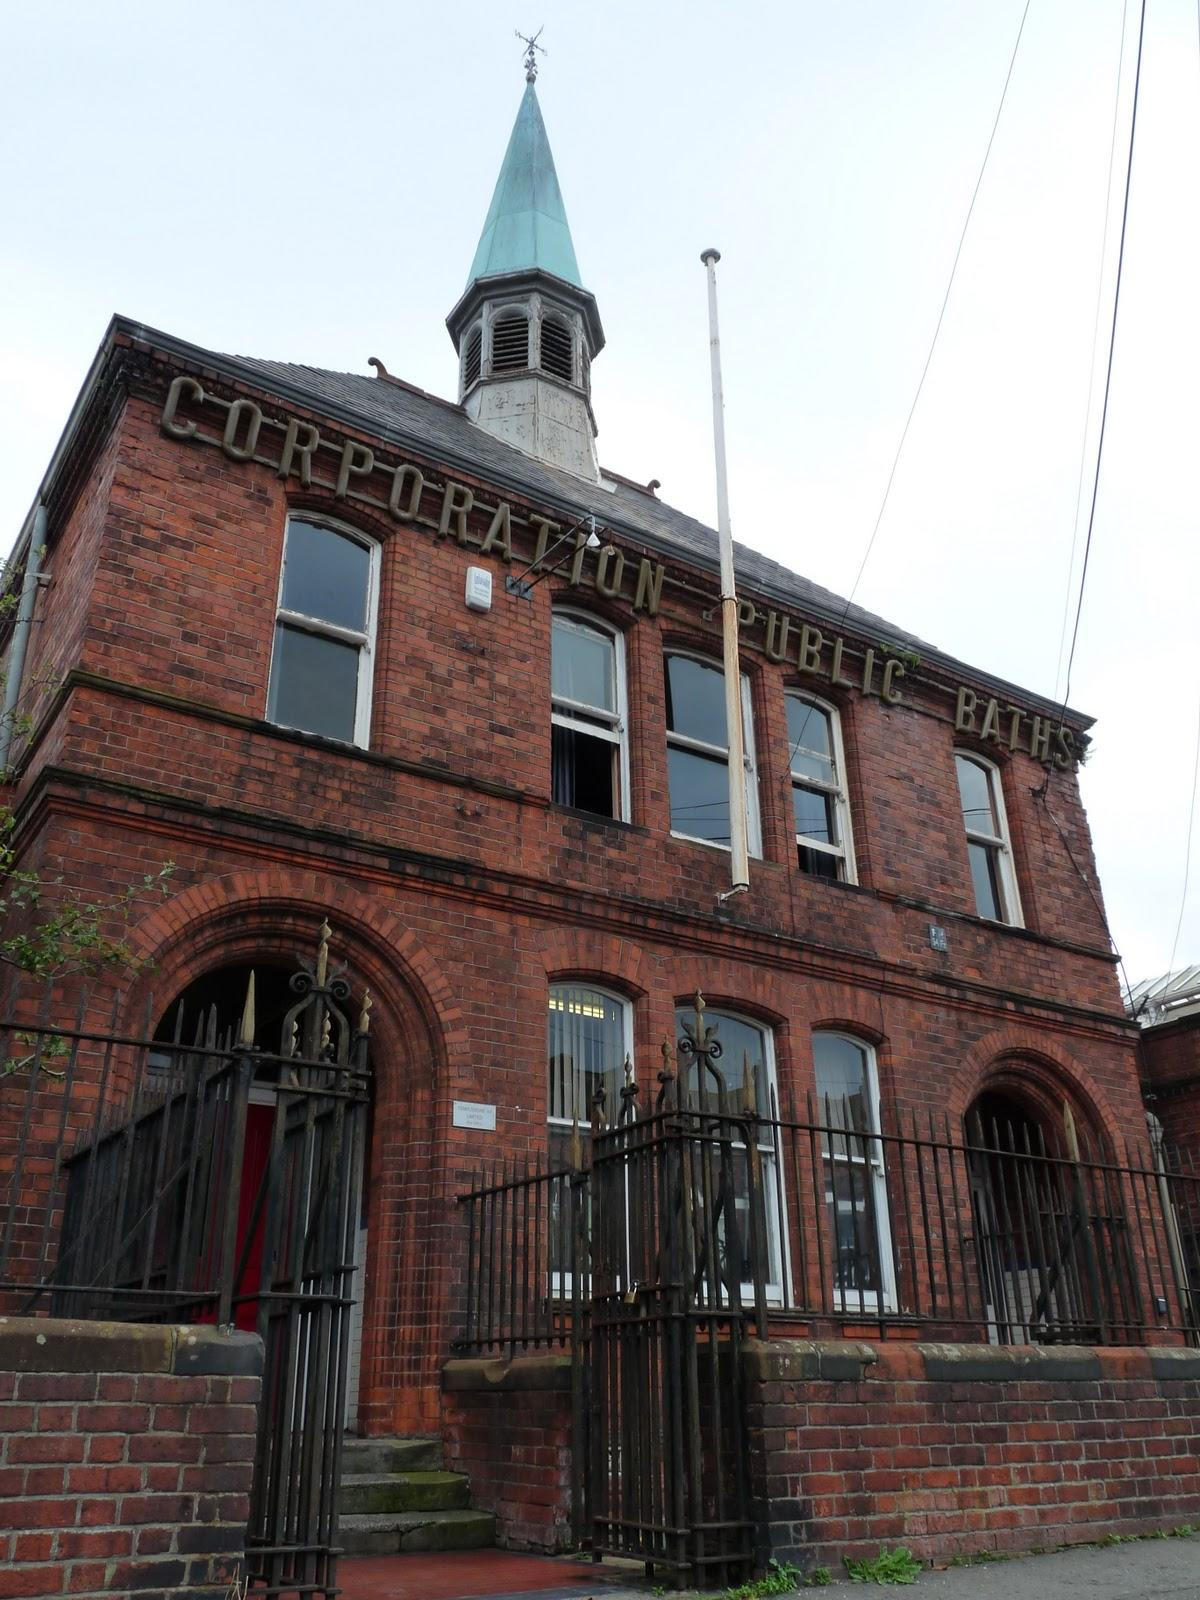 Templemore Baths was the last in a series of public baths opened throughout Belfast in the late 19th century